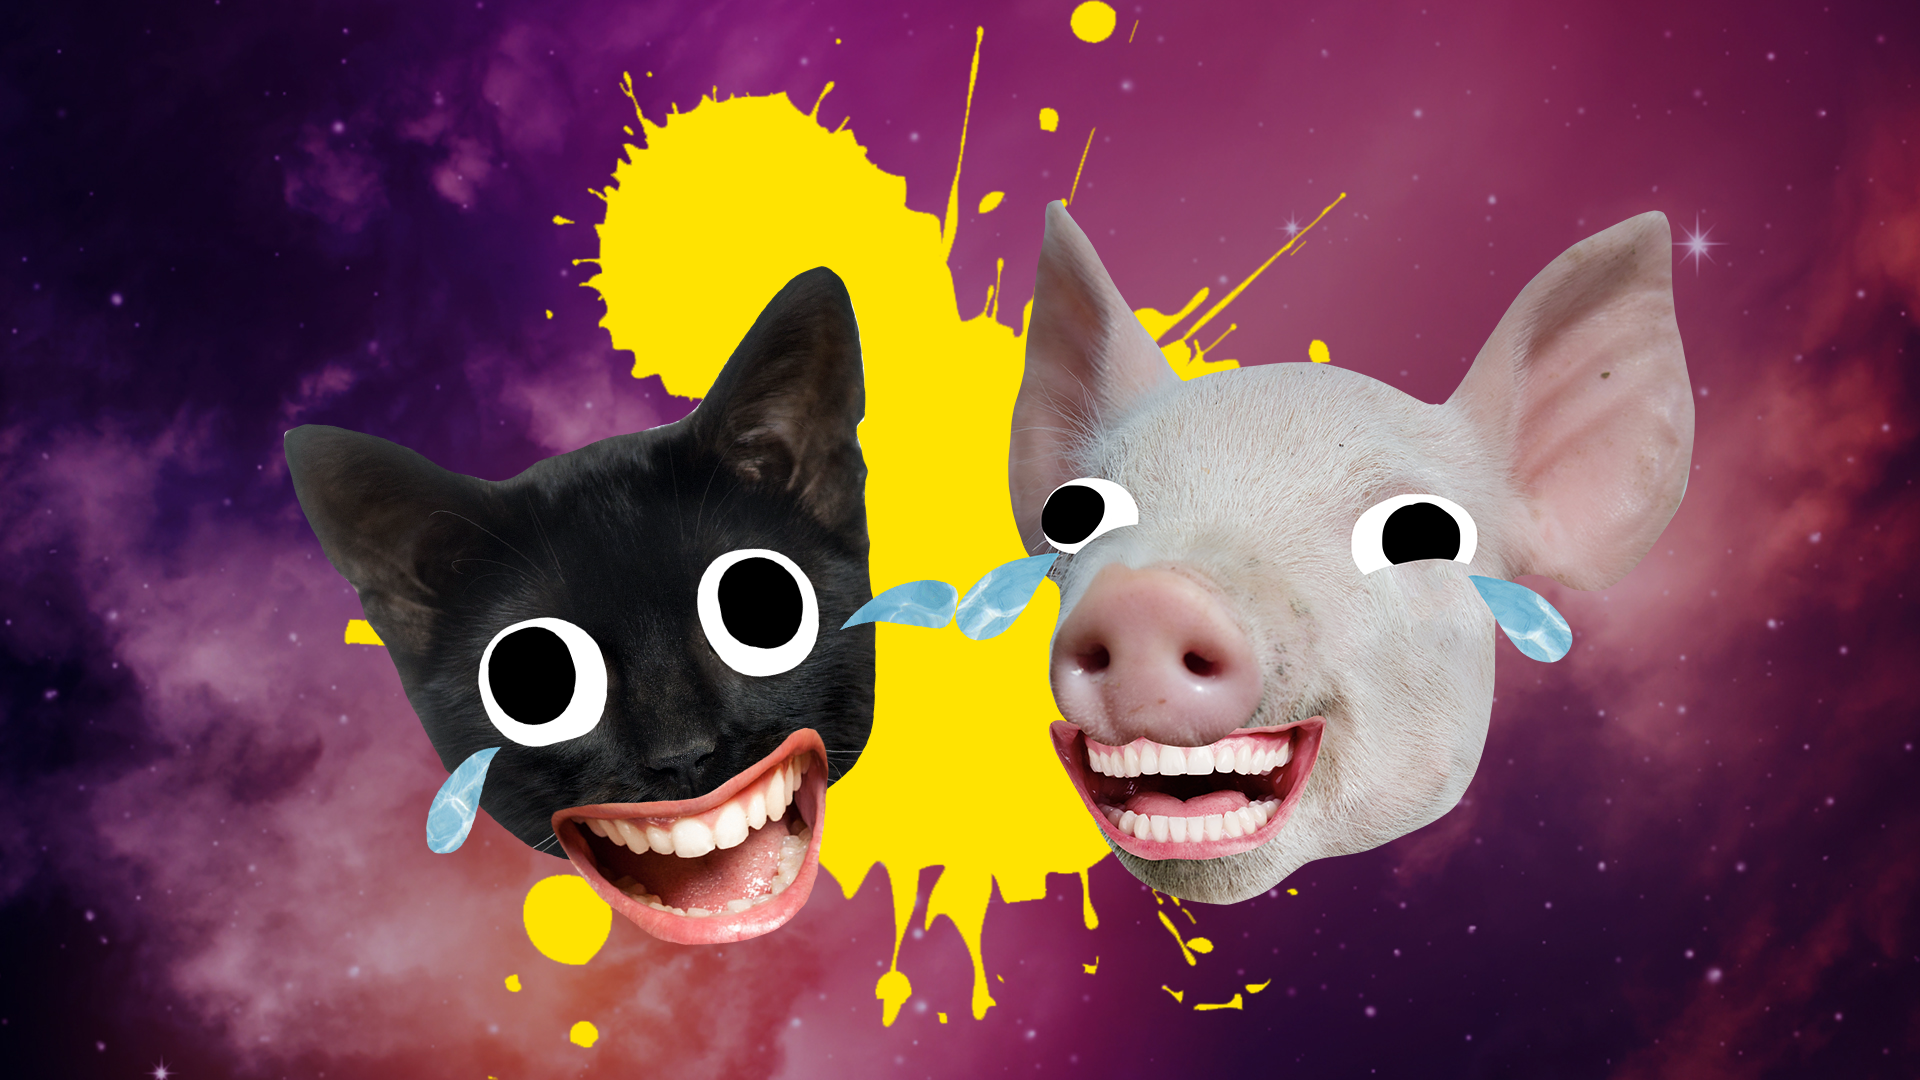 Cry laughing pig and cat